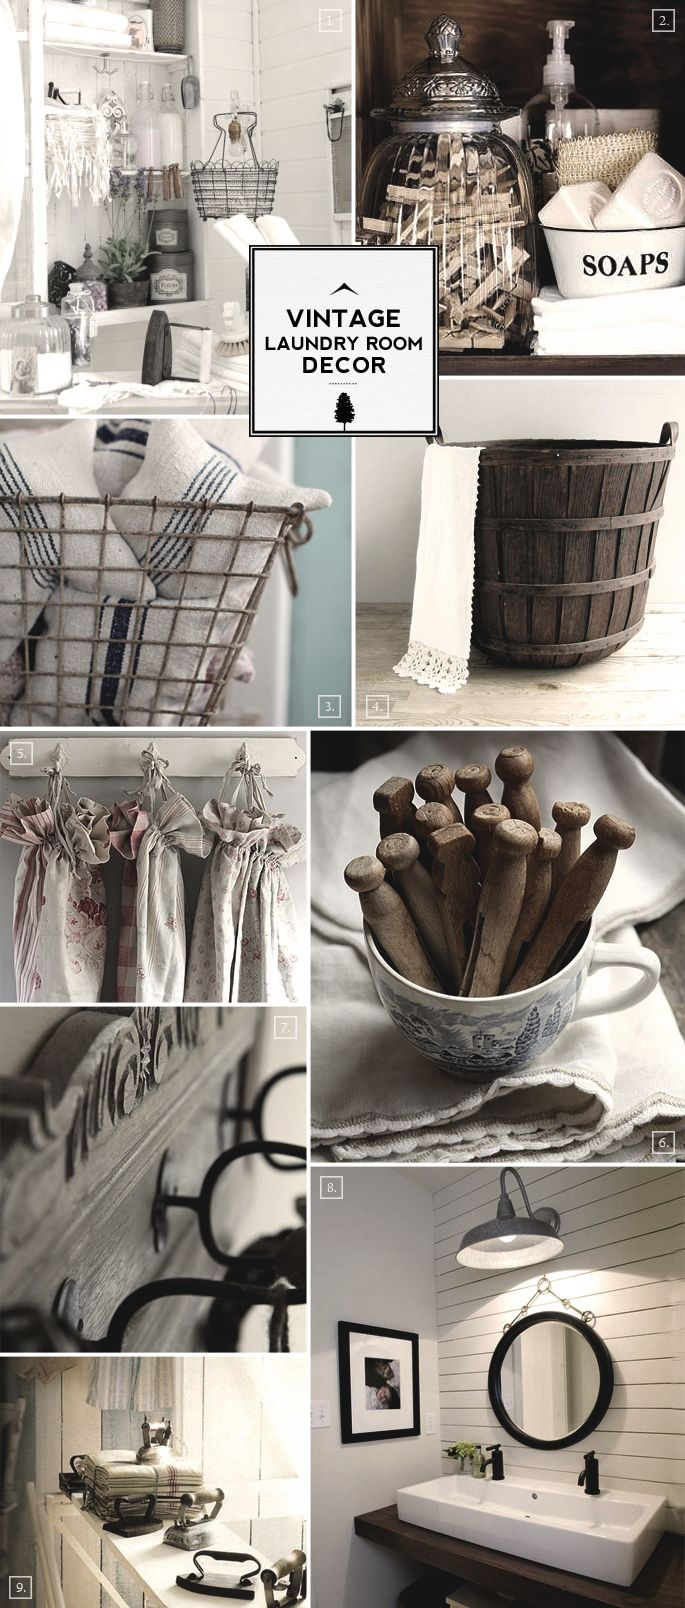 style guide vintage laundry room decor ideas diy pinterest